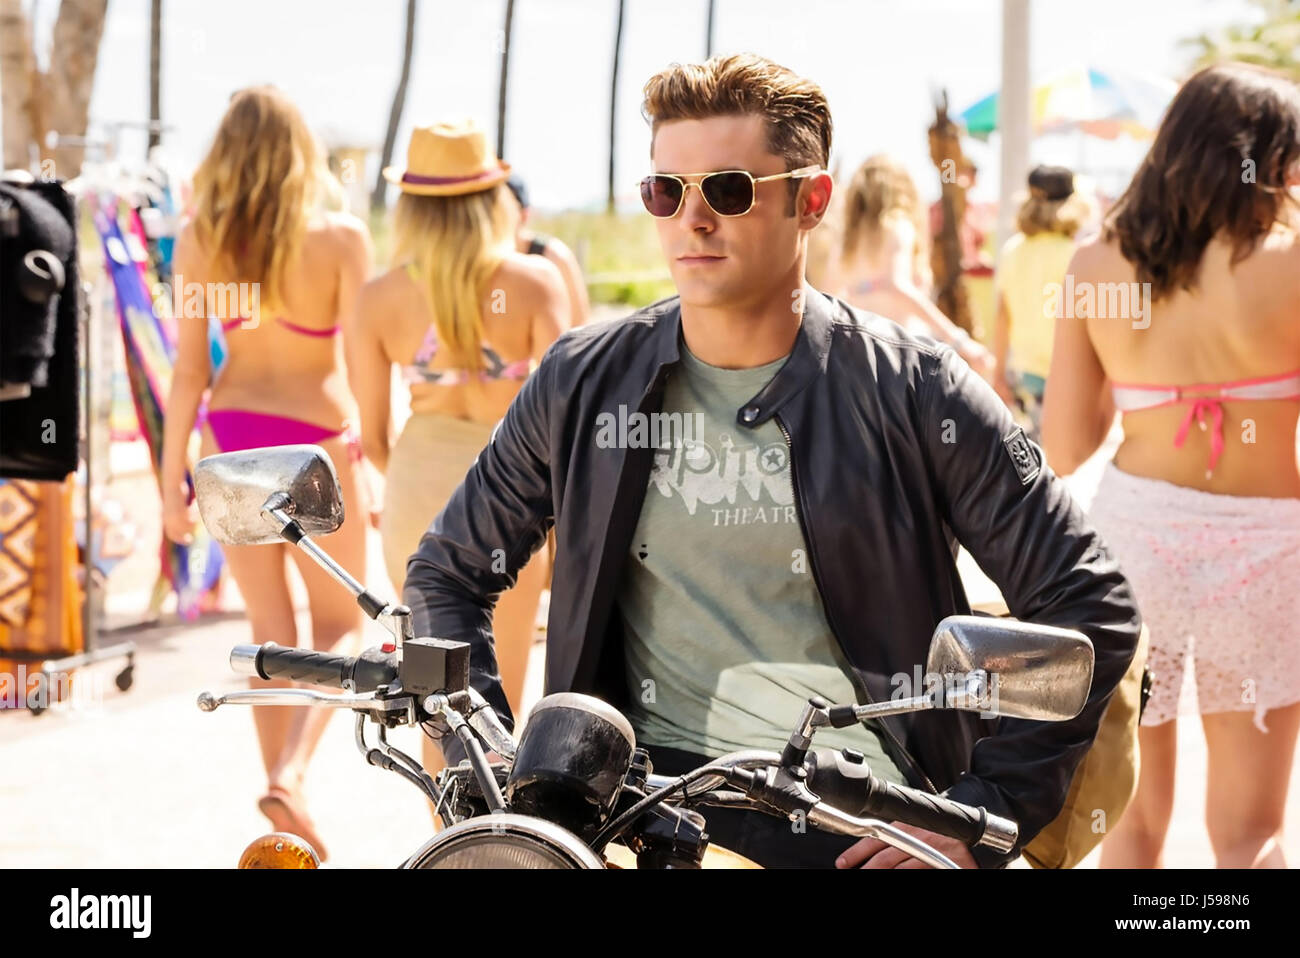 BAYWATCH 2017 Paramount film with Zac Efron - Stock Image